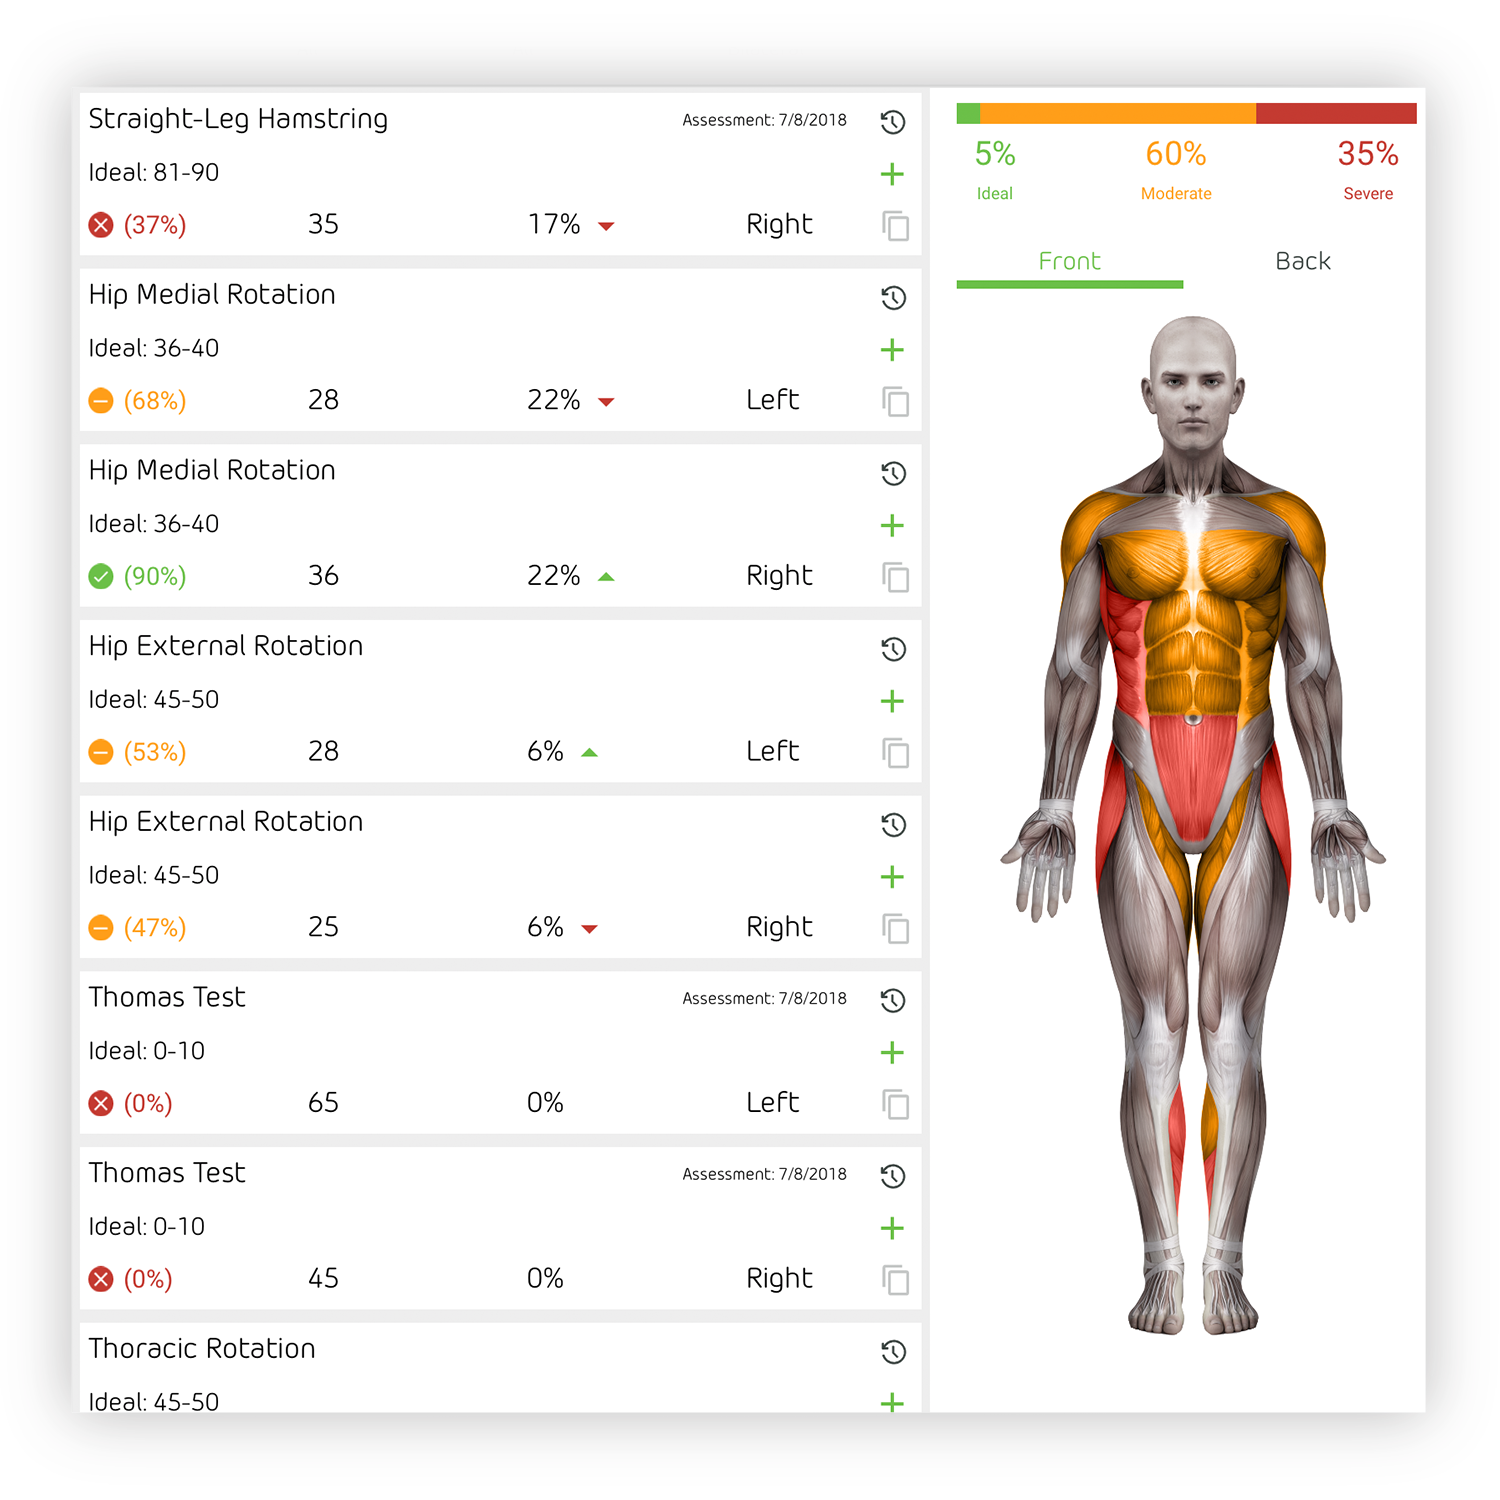 Evaluation Details - Results displayed from left to right are as follows: The Ideal Range of Motion, a color representation of the measurement classification, the Percent of Ideal—a comparison of the measurement taken to the ideal reference range, the Actual Measurement taken, the Percent of Asymmetry, the Side of the body the measurement was taken on.